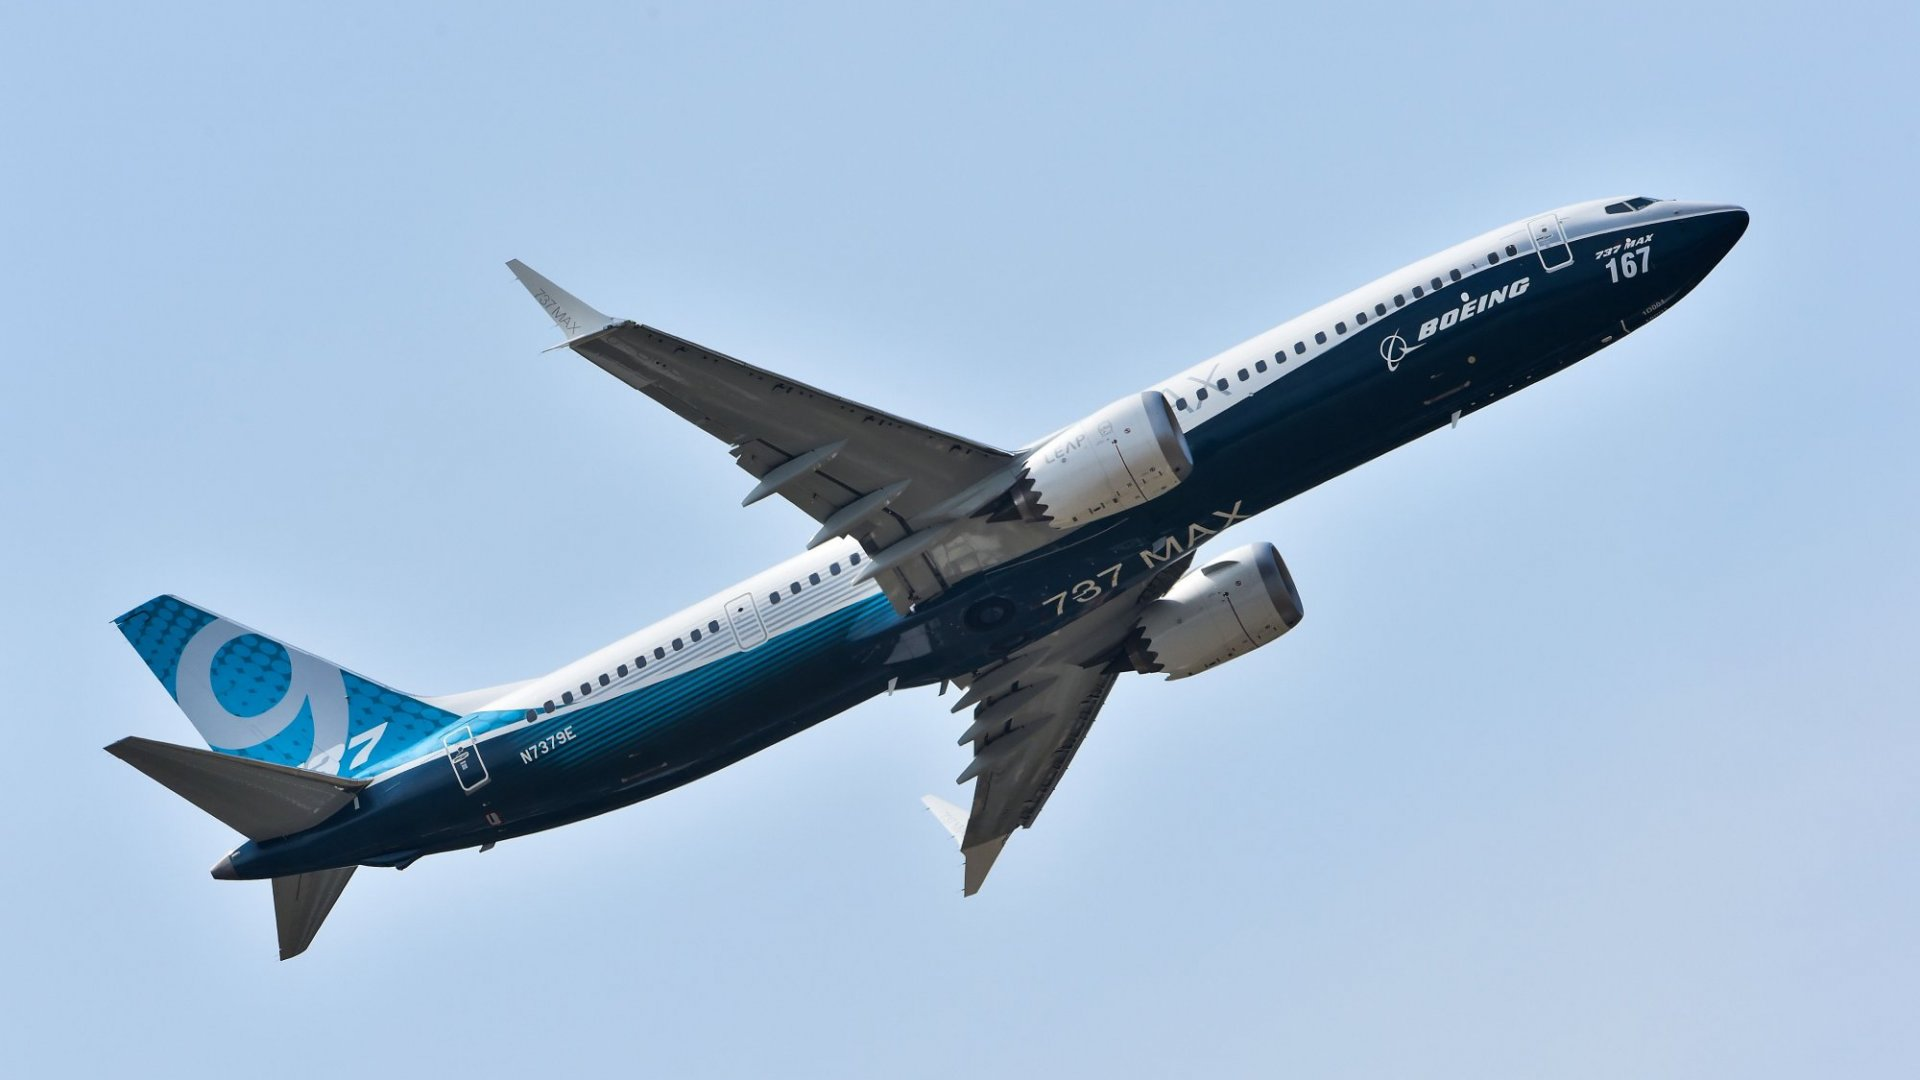 The CEO of Boeing Just Issued an Extraordinary Statement About the Company's 737 MAX Aircraft